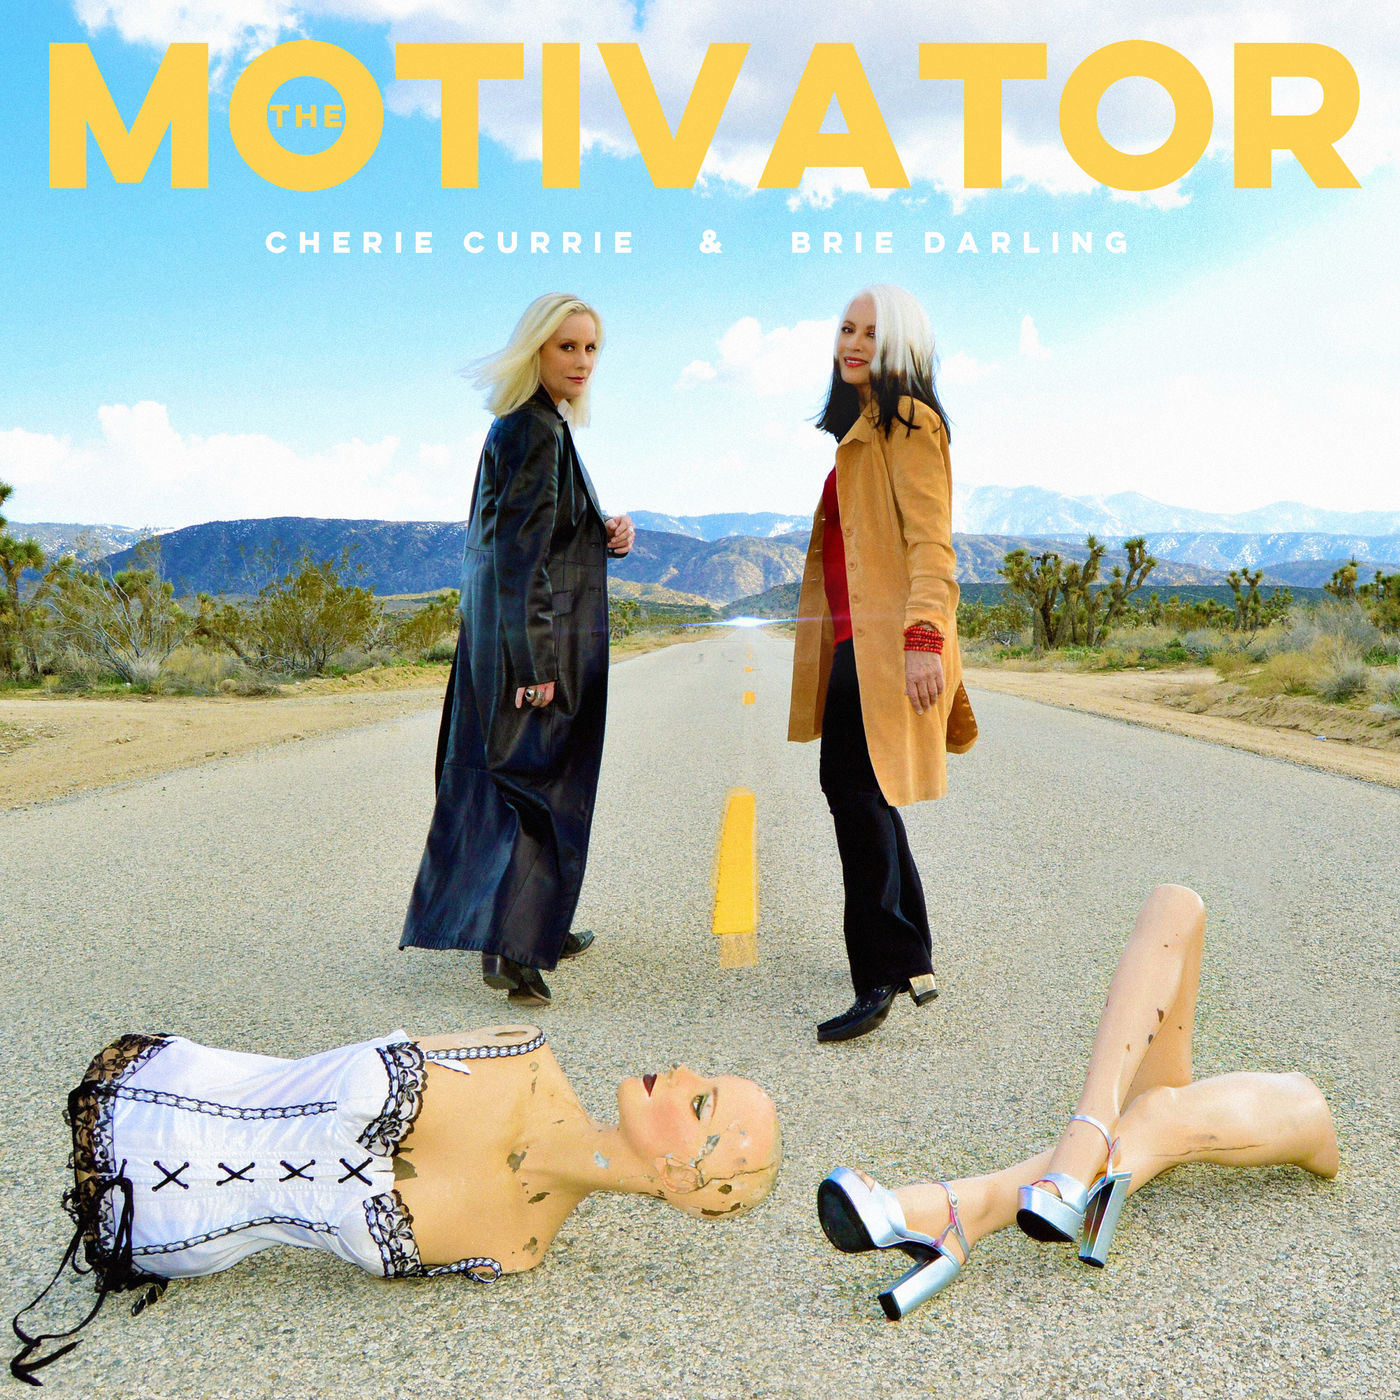 Cherie Currie & Brie Darling - The Motivator (2019)